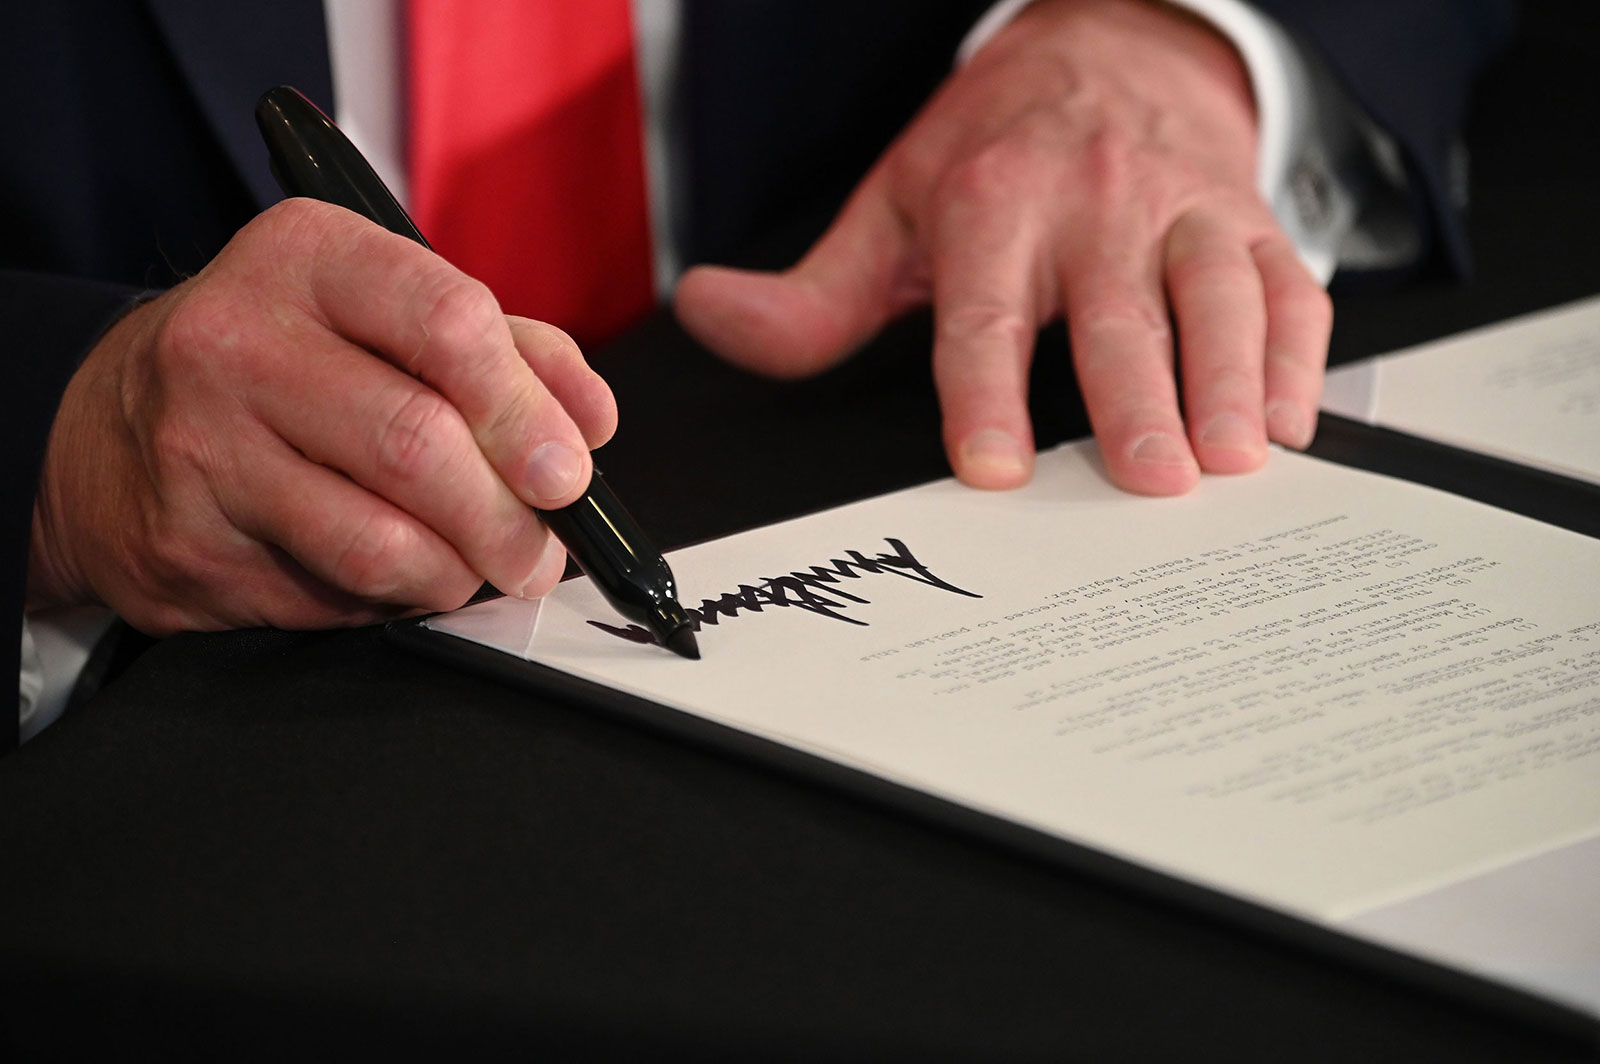 President Donald Trump signs executive actions on coronavirus relief in Bedminster, New Jersey, on August 8.